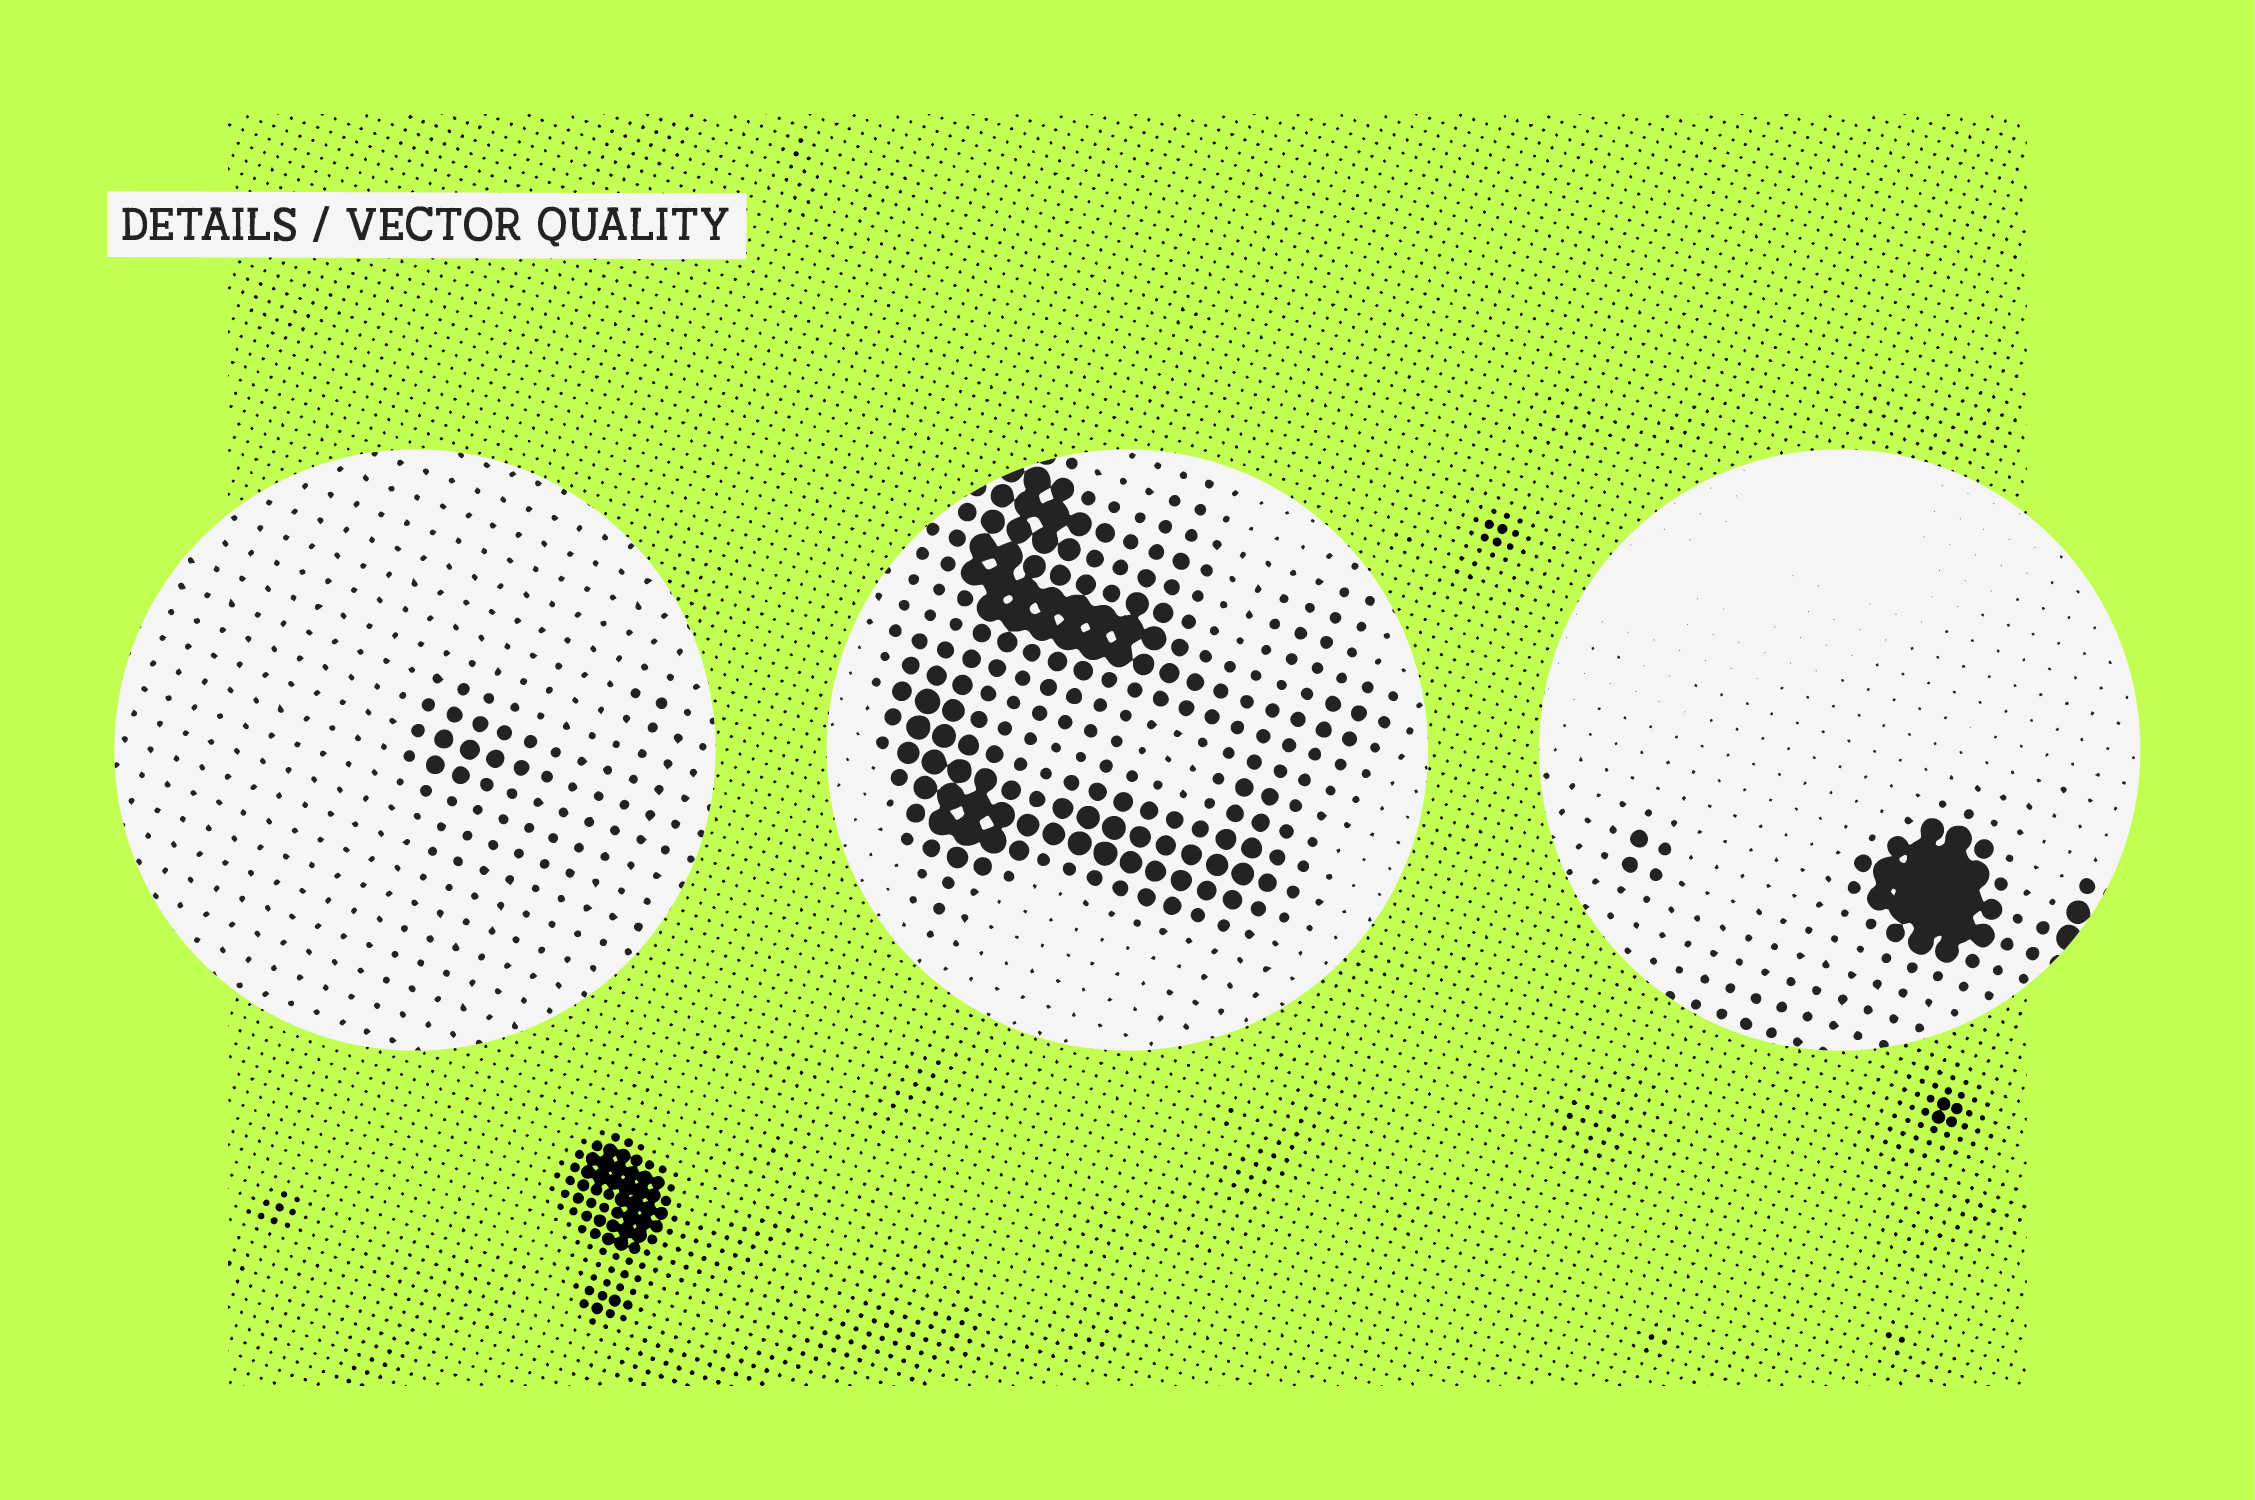 Halftone Stains Vol.#1 Texture Pack Graphic By antipixel Image 6